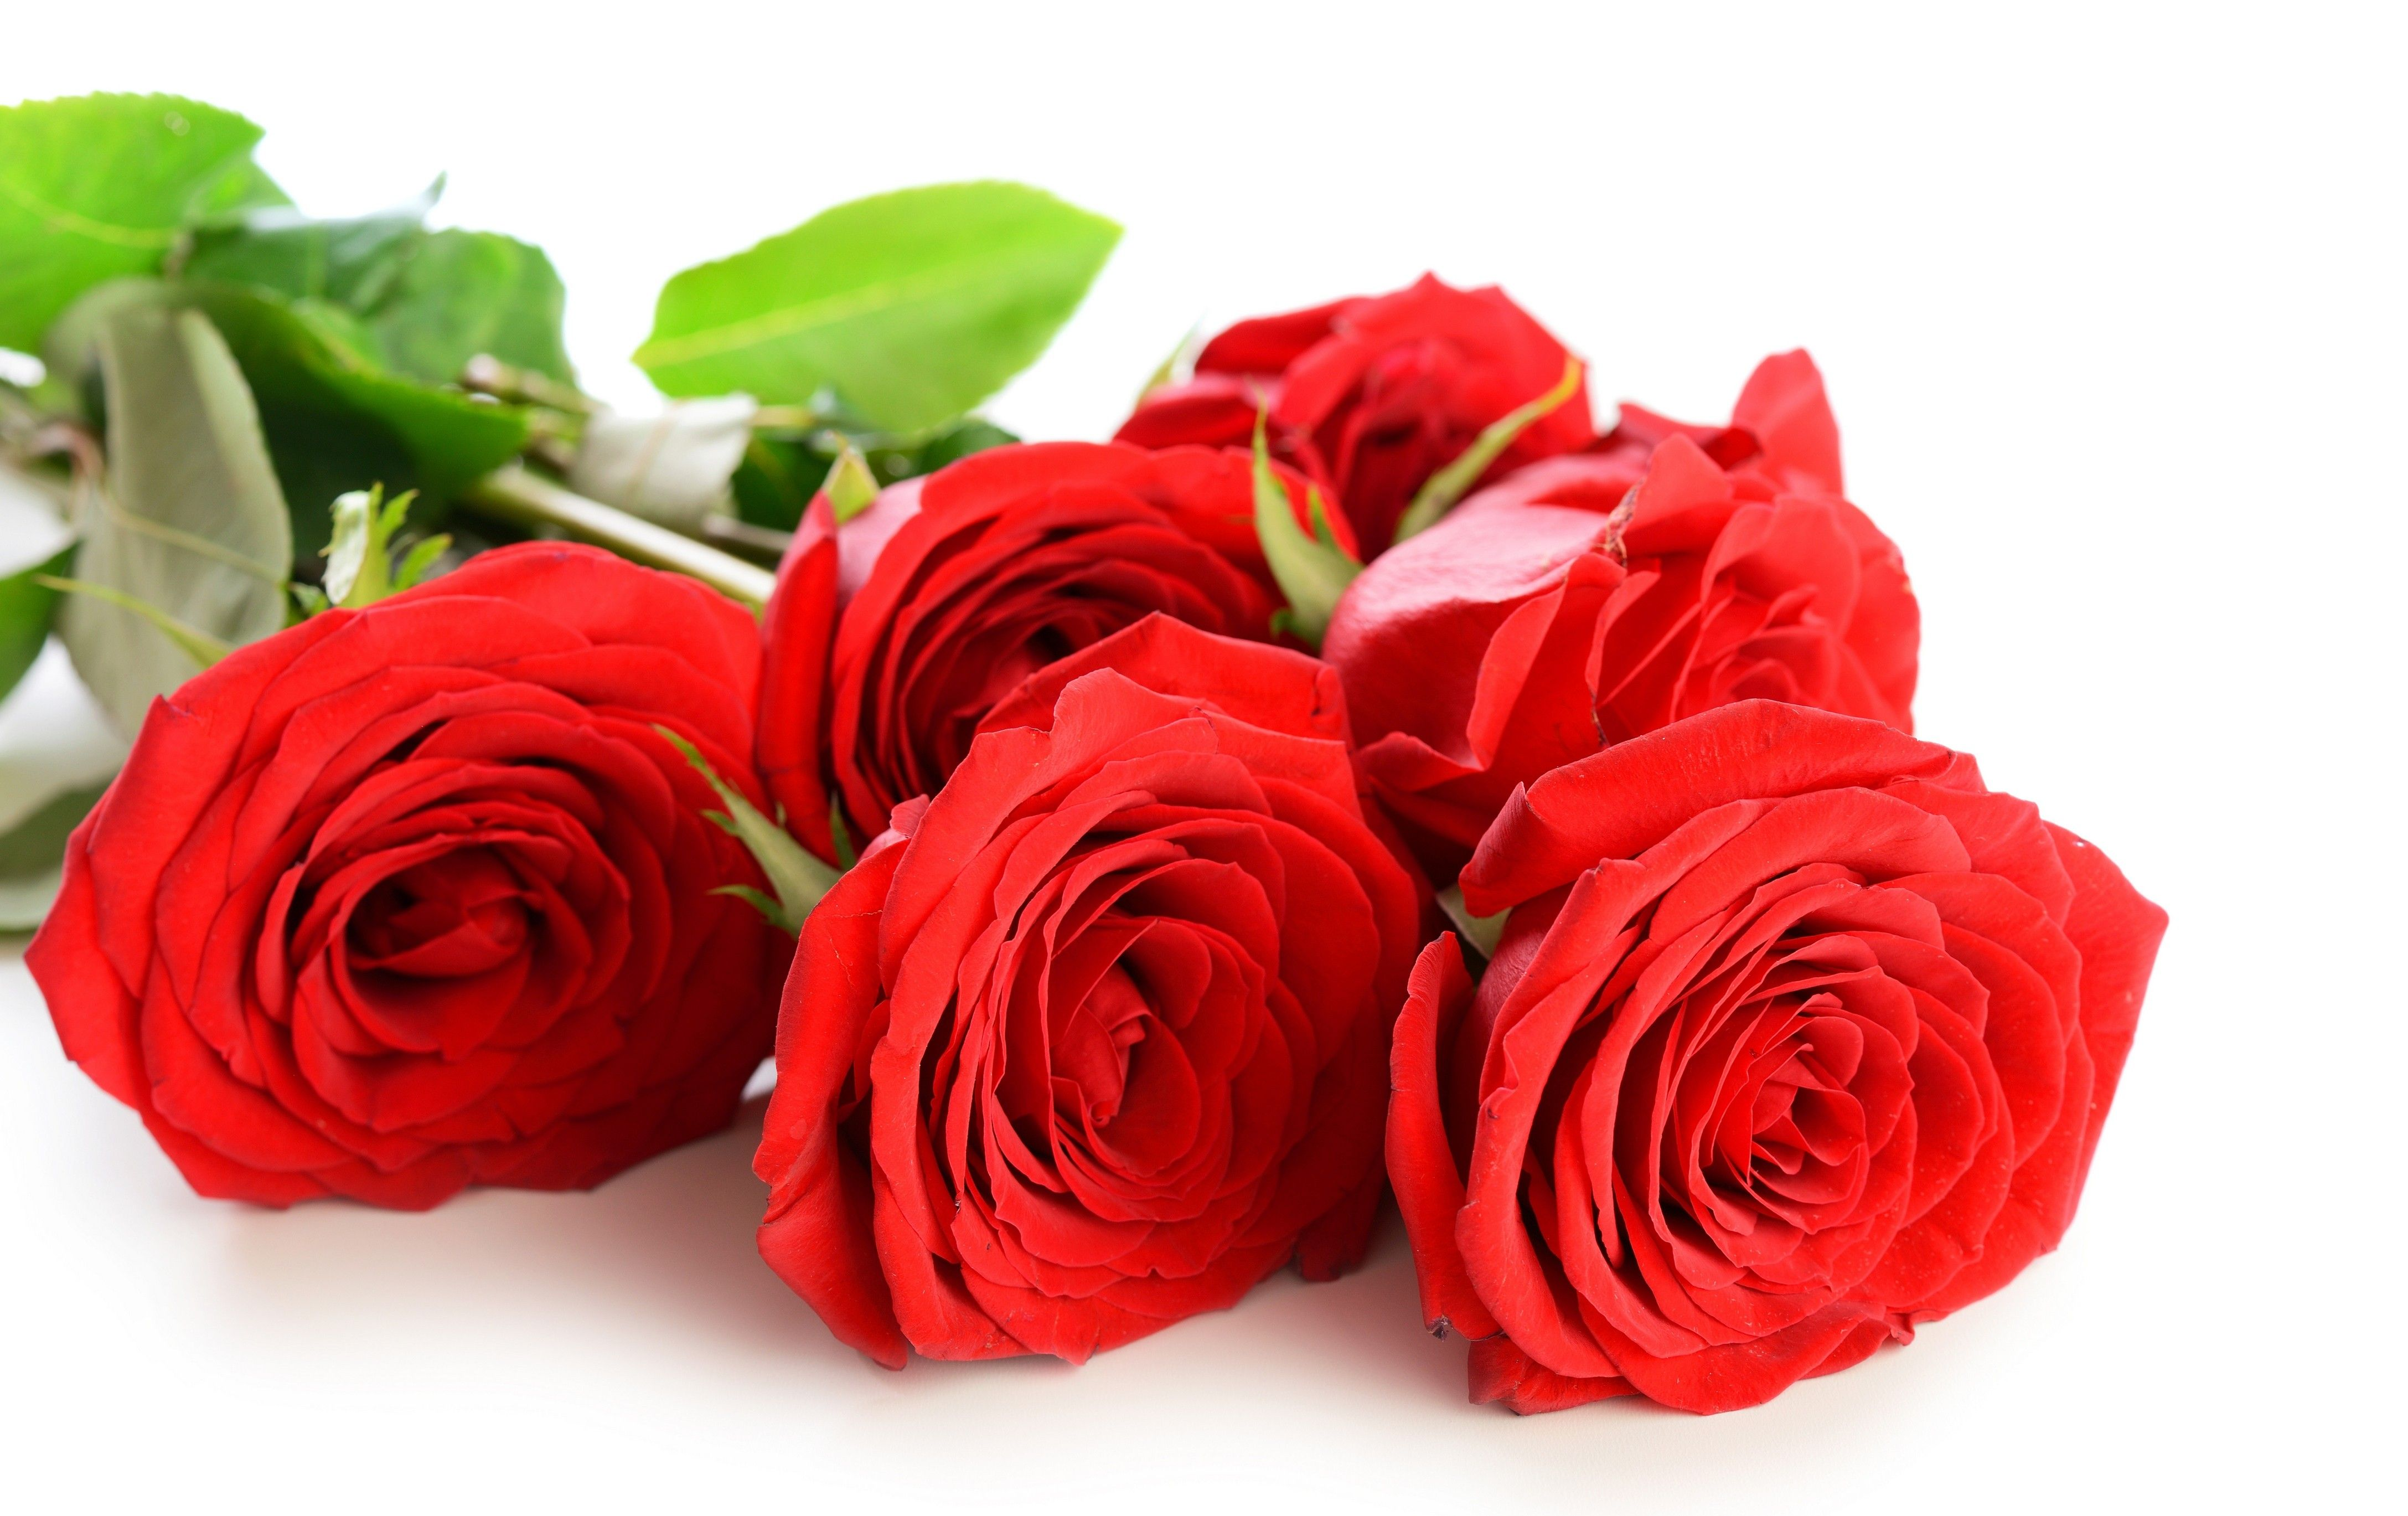 Flowers: Rose Love Red Petals Nature Roses Flowers Flower Wallpapers ...